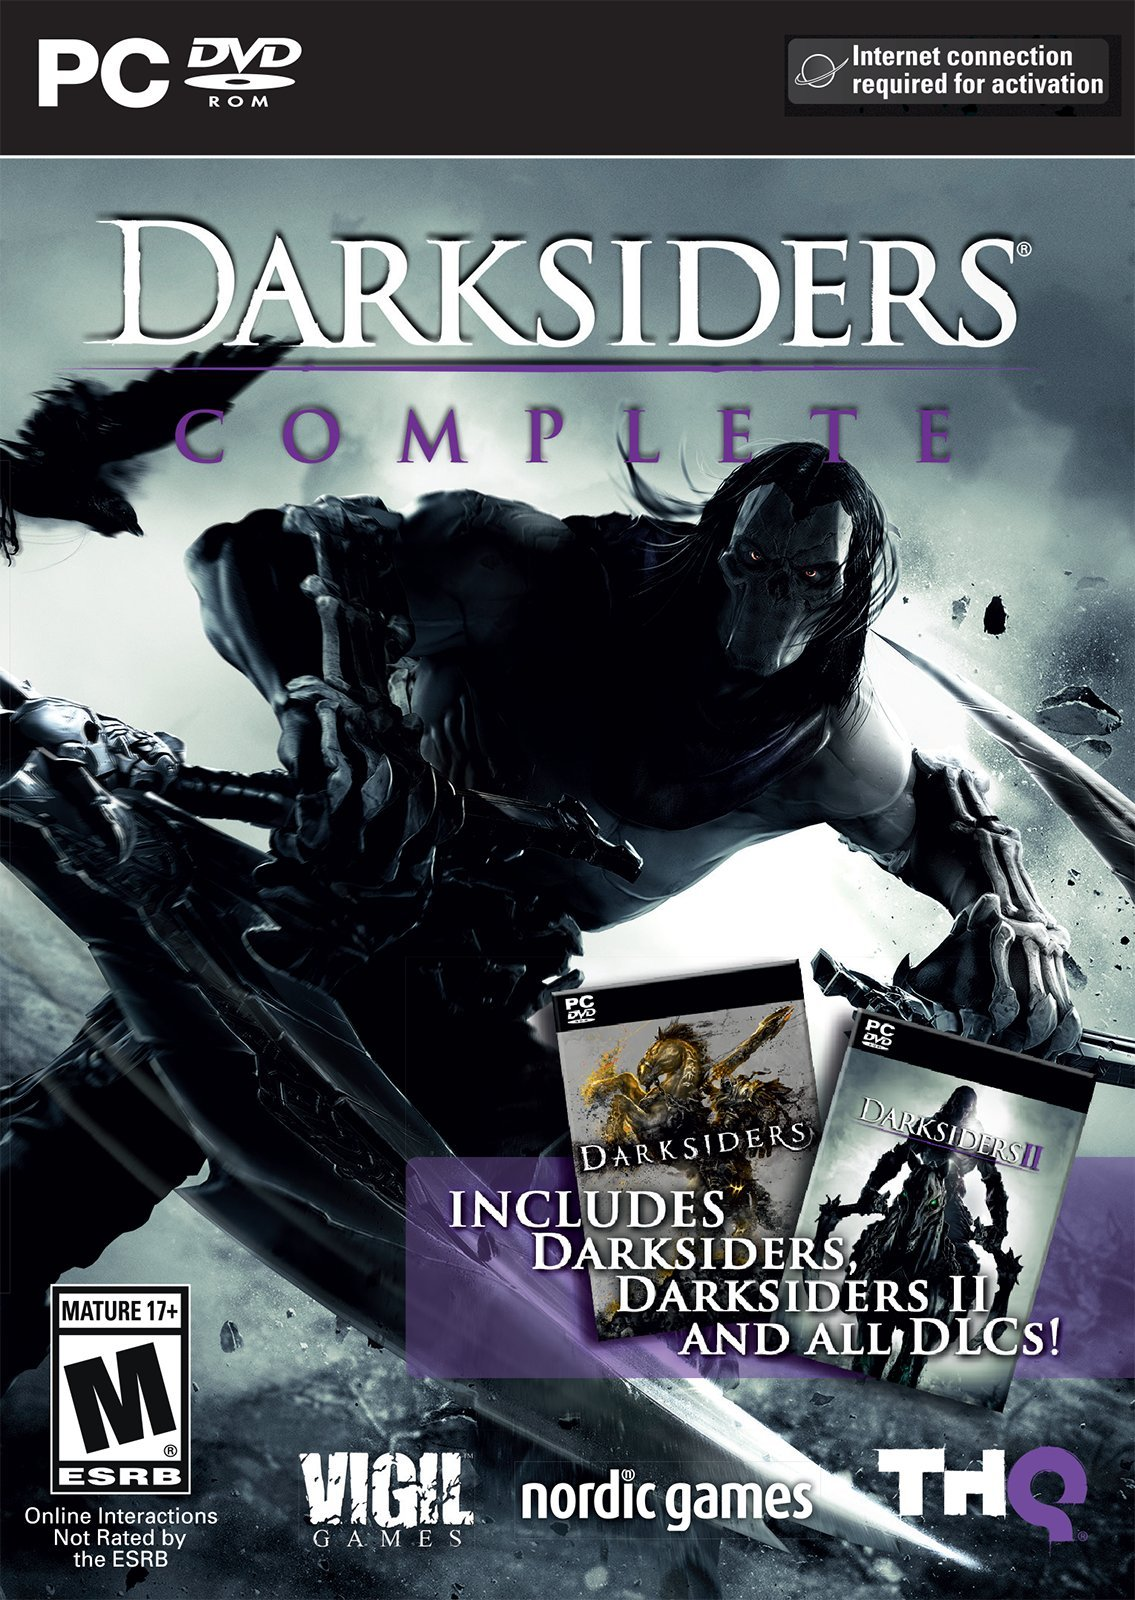 Darksiders Collection Release Date PS3 Xbox 360 PC